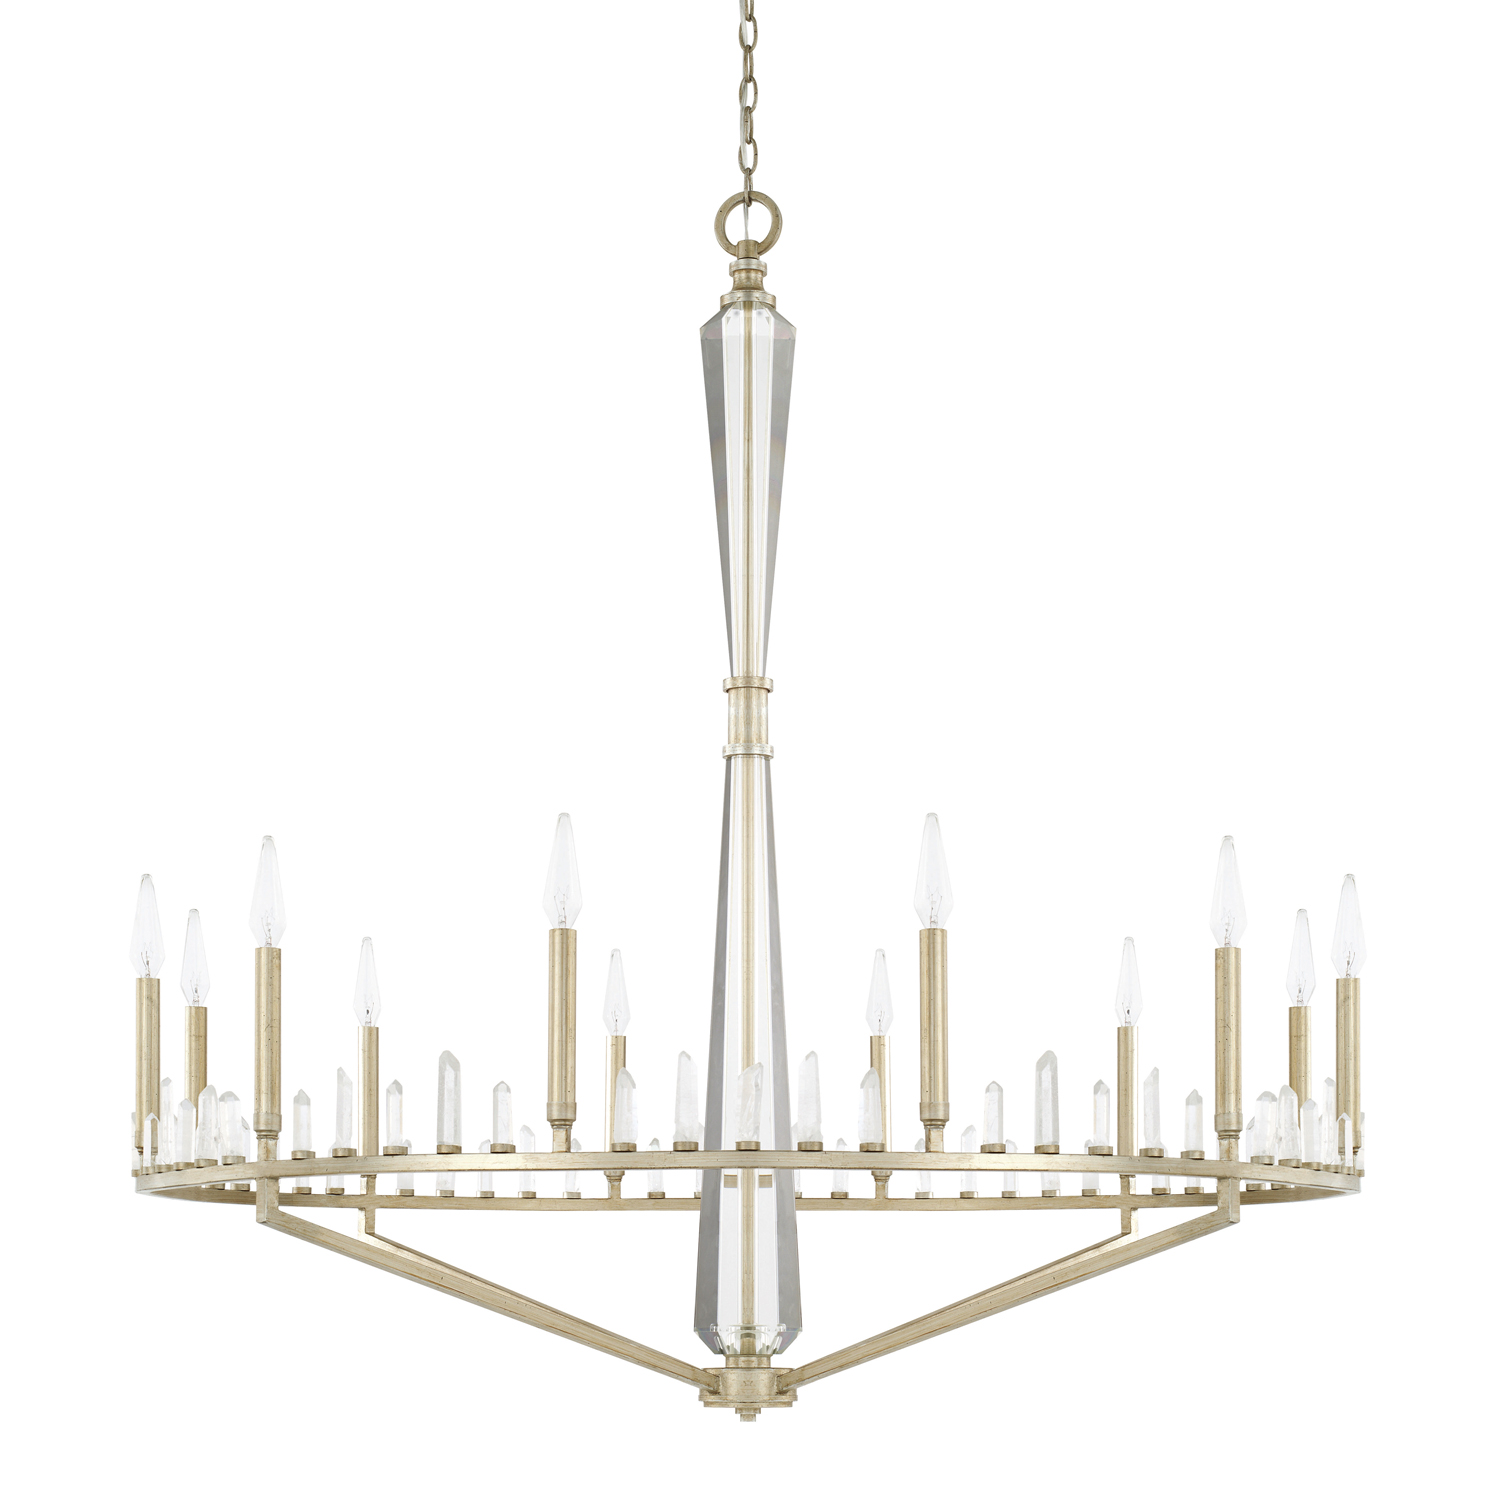 12 Light Chandelier from the Adira collection by Capital Lighting 428202WG